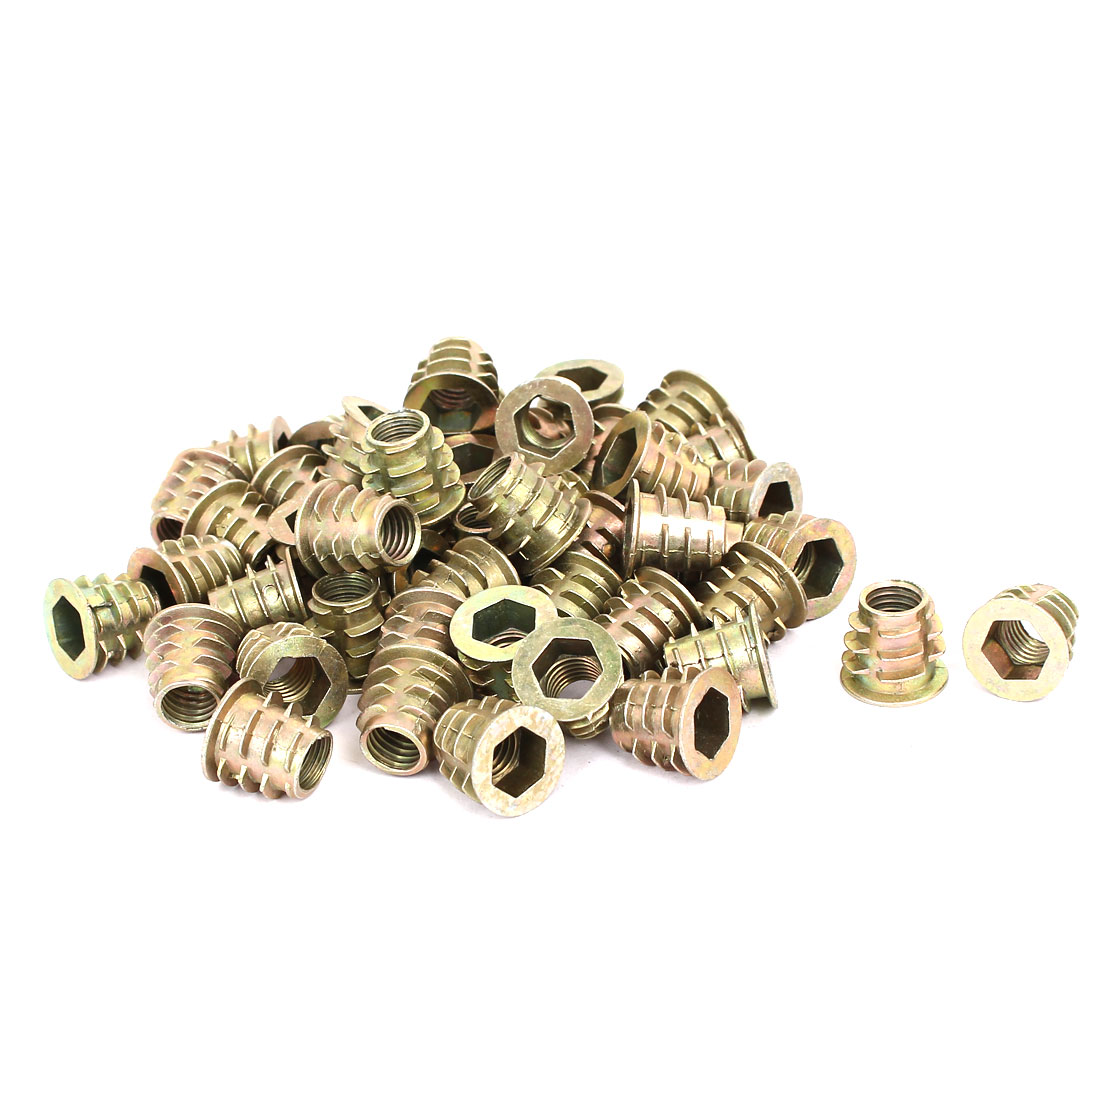 M8 x 13mm Hex Socket Head Insert Screws E-Nuts Furniture Fittings 50pcs